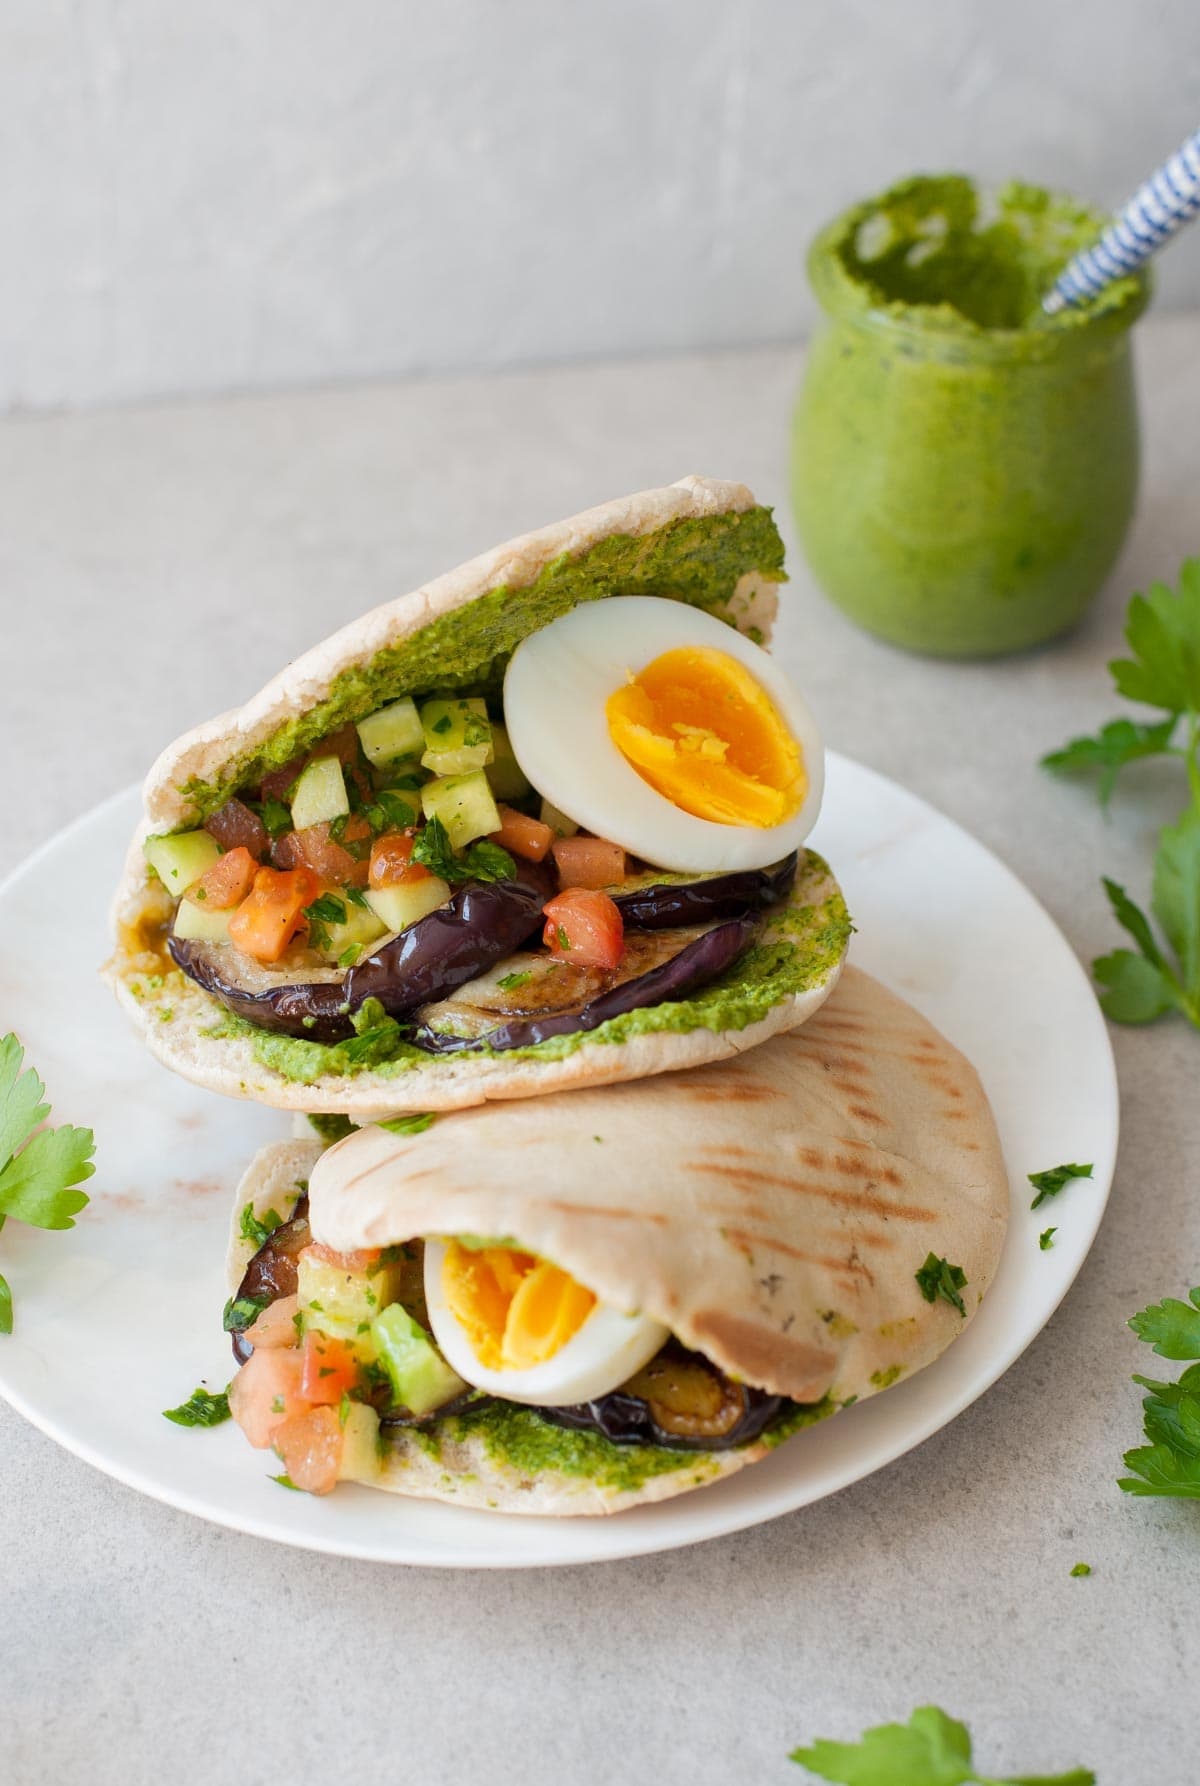 two pita breads filled with eggplant, eggs, tomato and cucumber salad, and green tahini sauce on a white plate